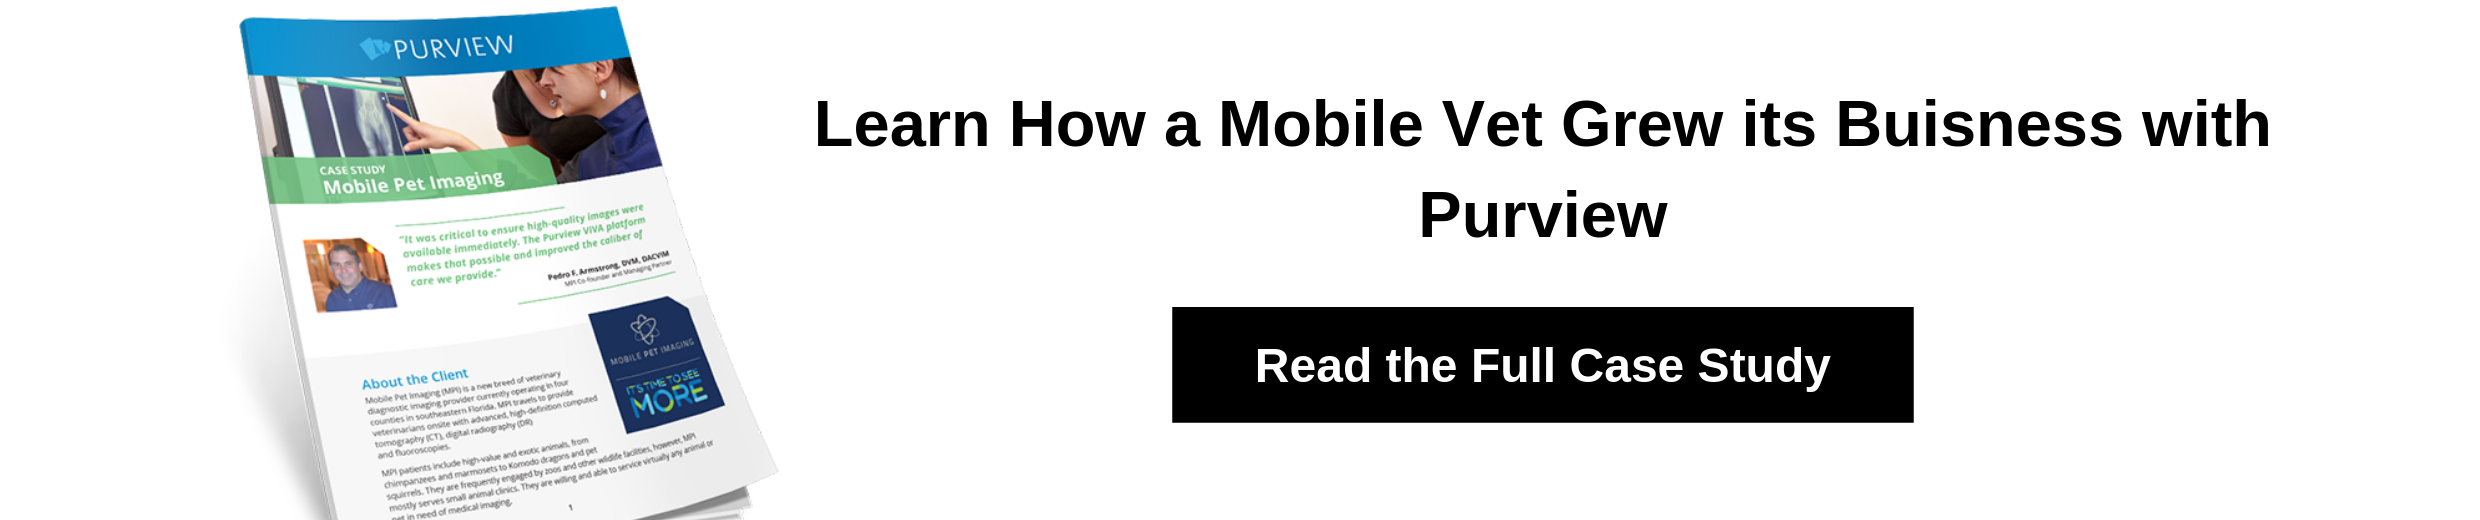 Learn How a Mobile Vet Grew its Buisness with Purview-2